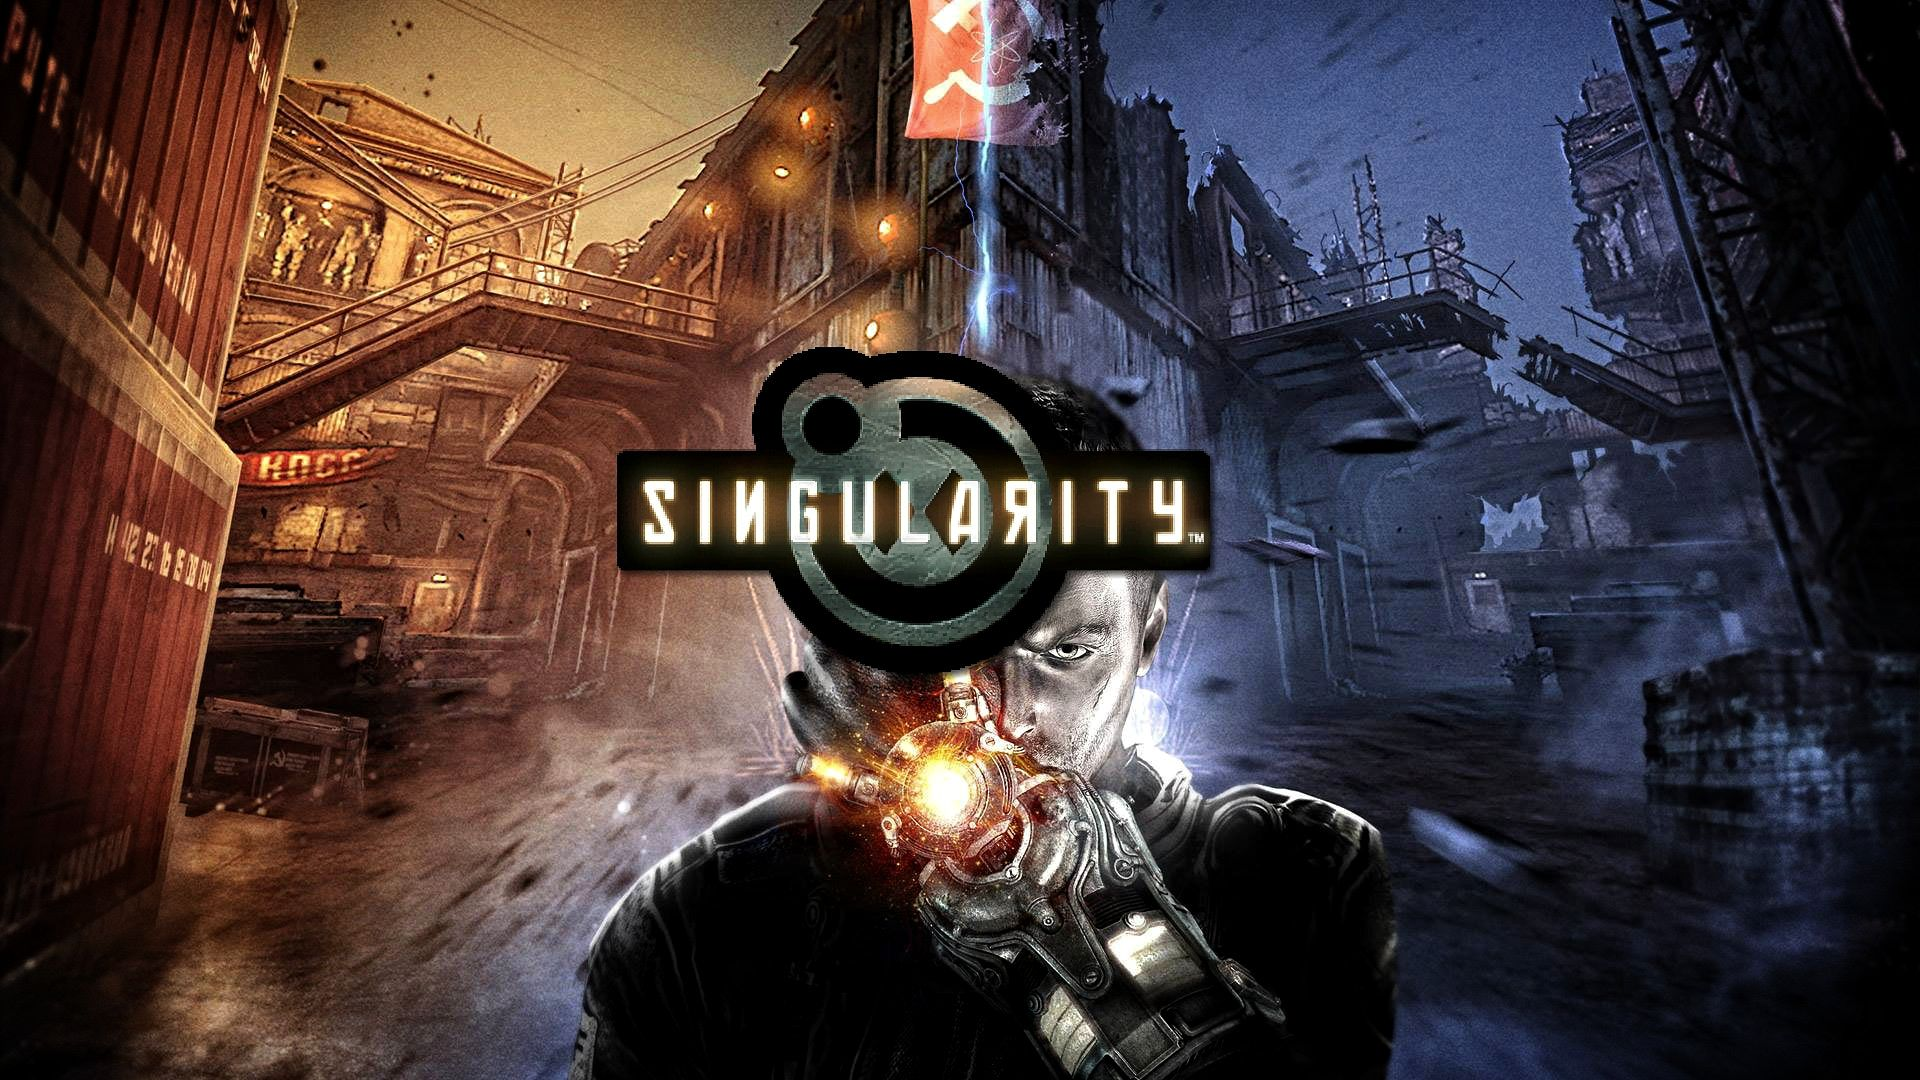 Singularity [PS3] İncelemesi